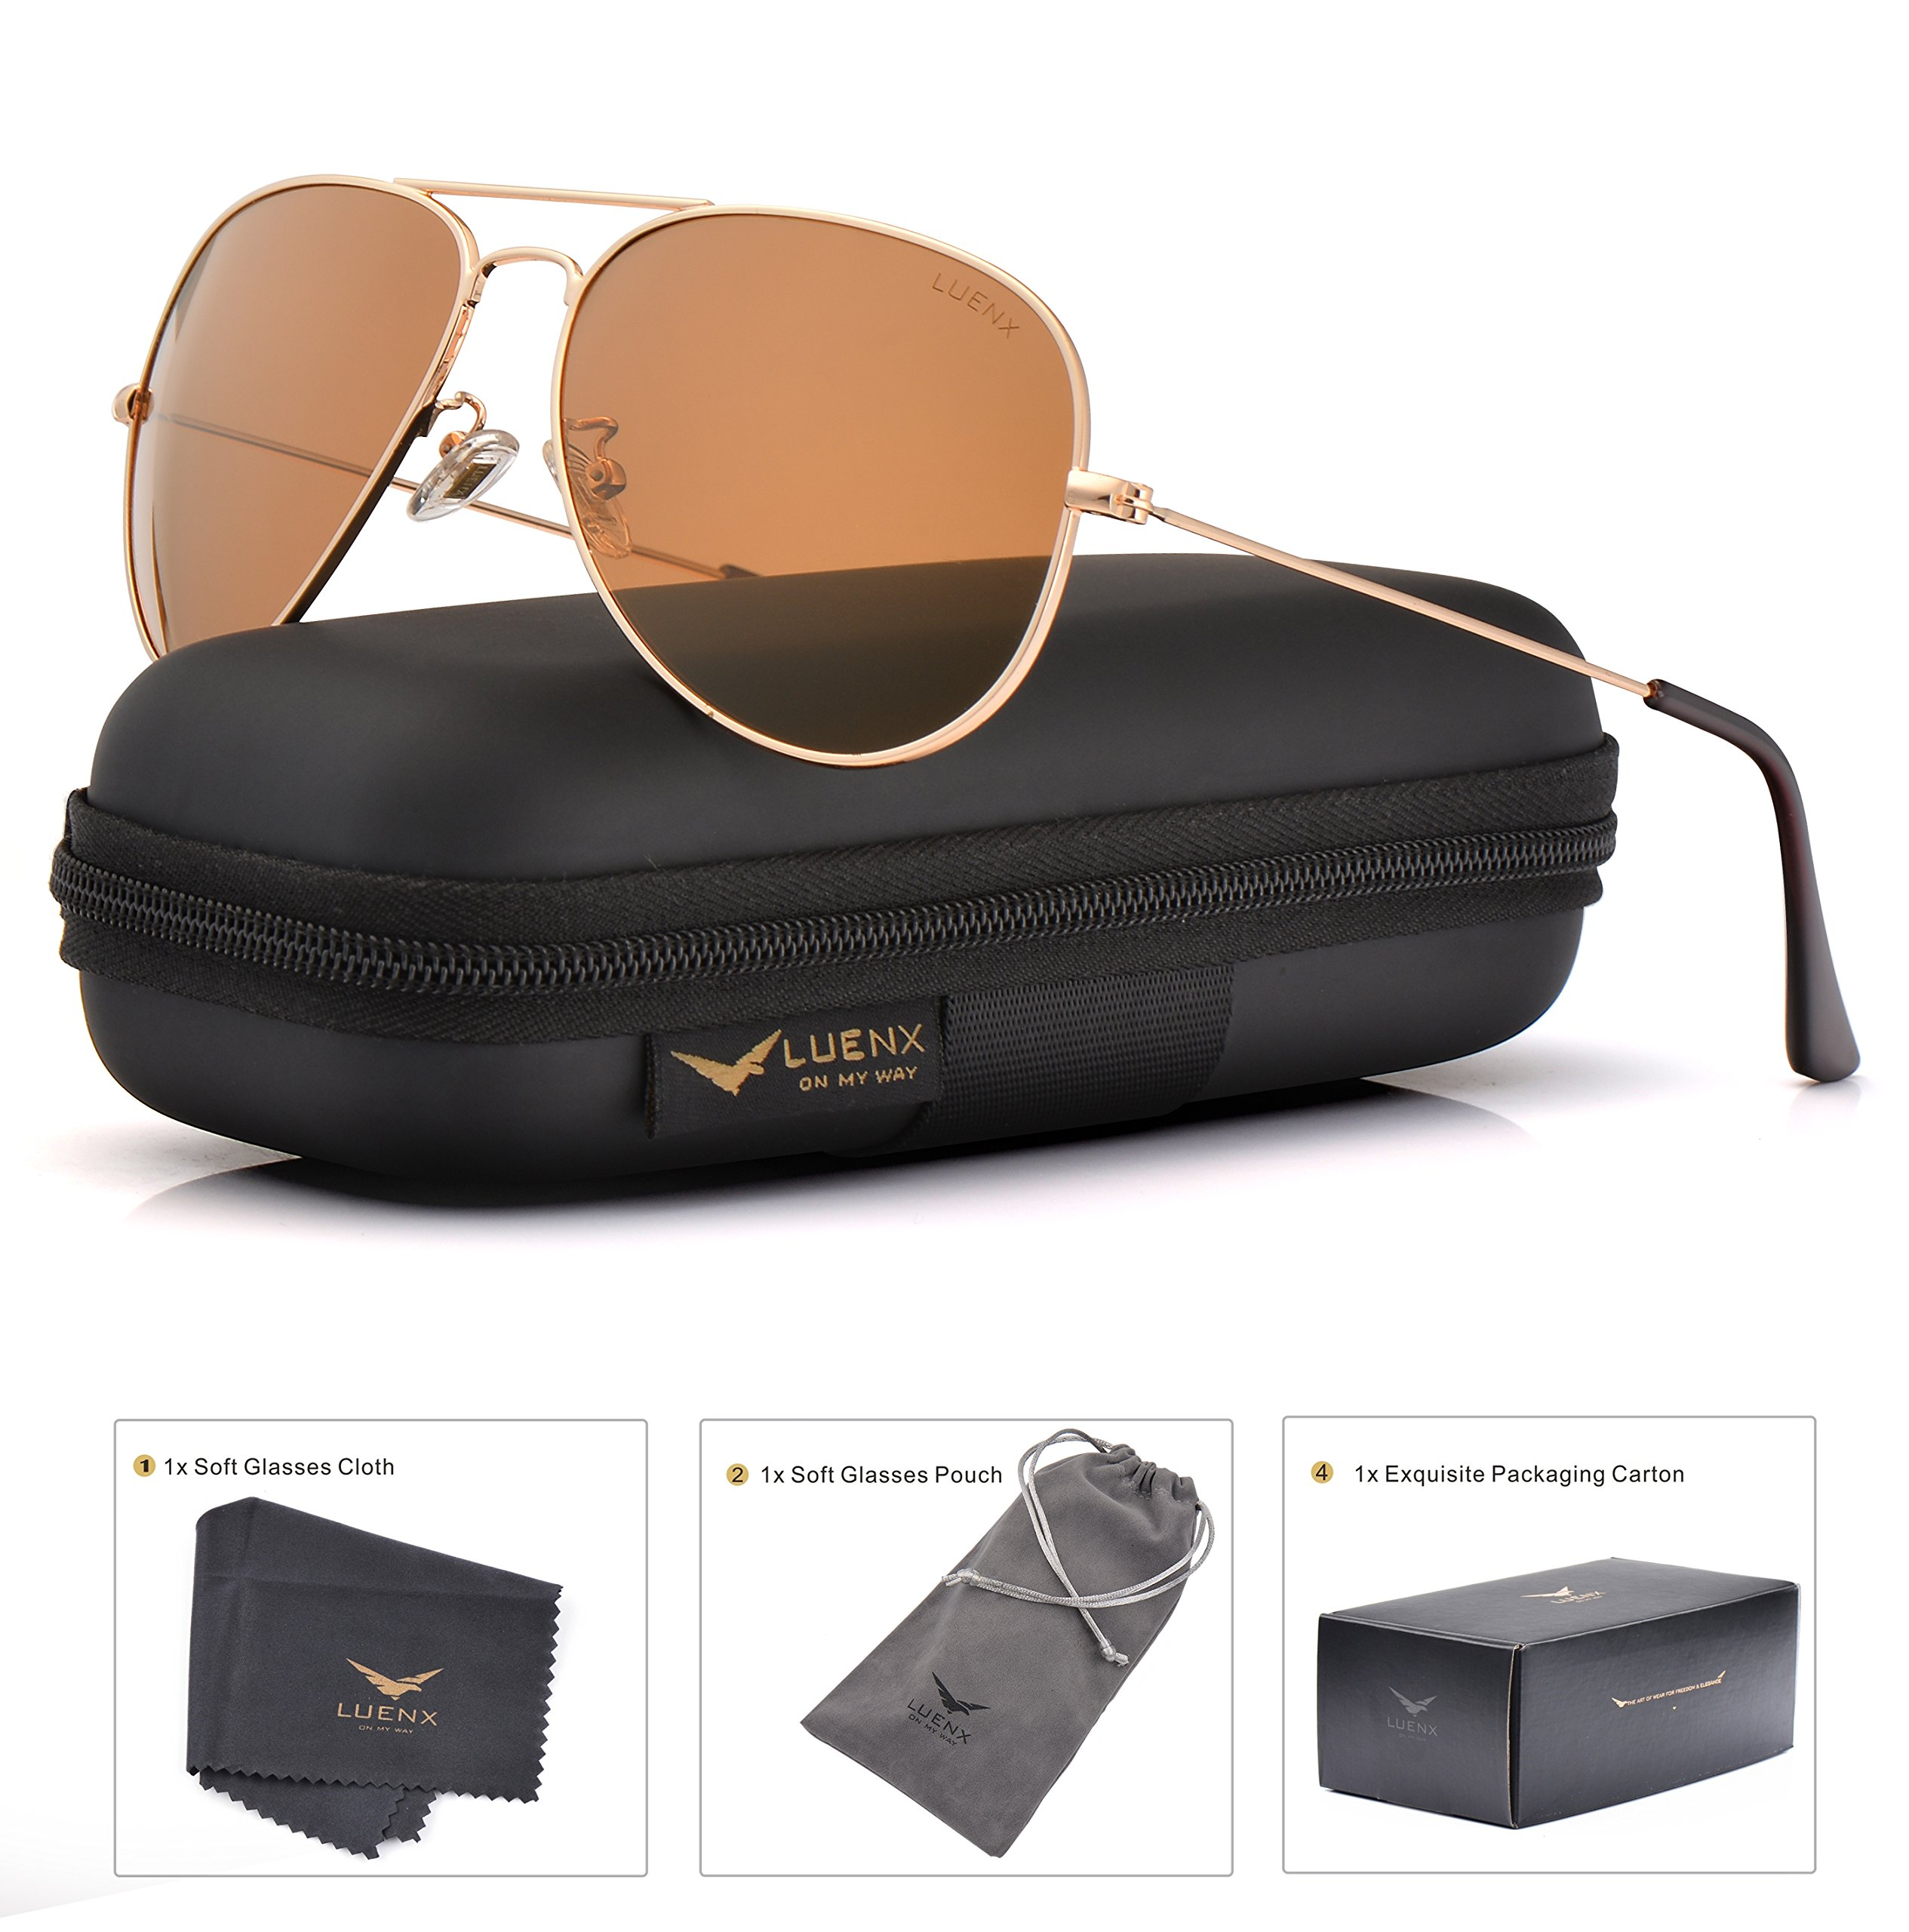 LUENX Womens Mens Aviator Sunglasses Polarized Brown Amber Lenses Gold Metal Frame UV400 Protection Classic Style